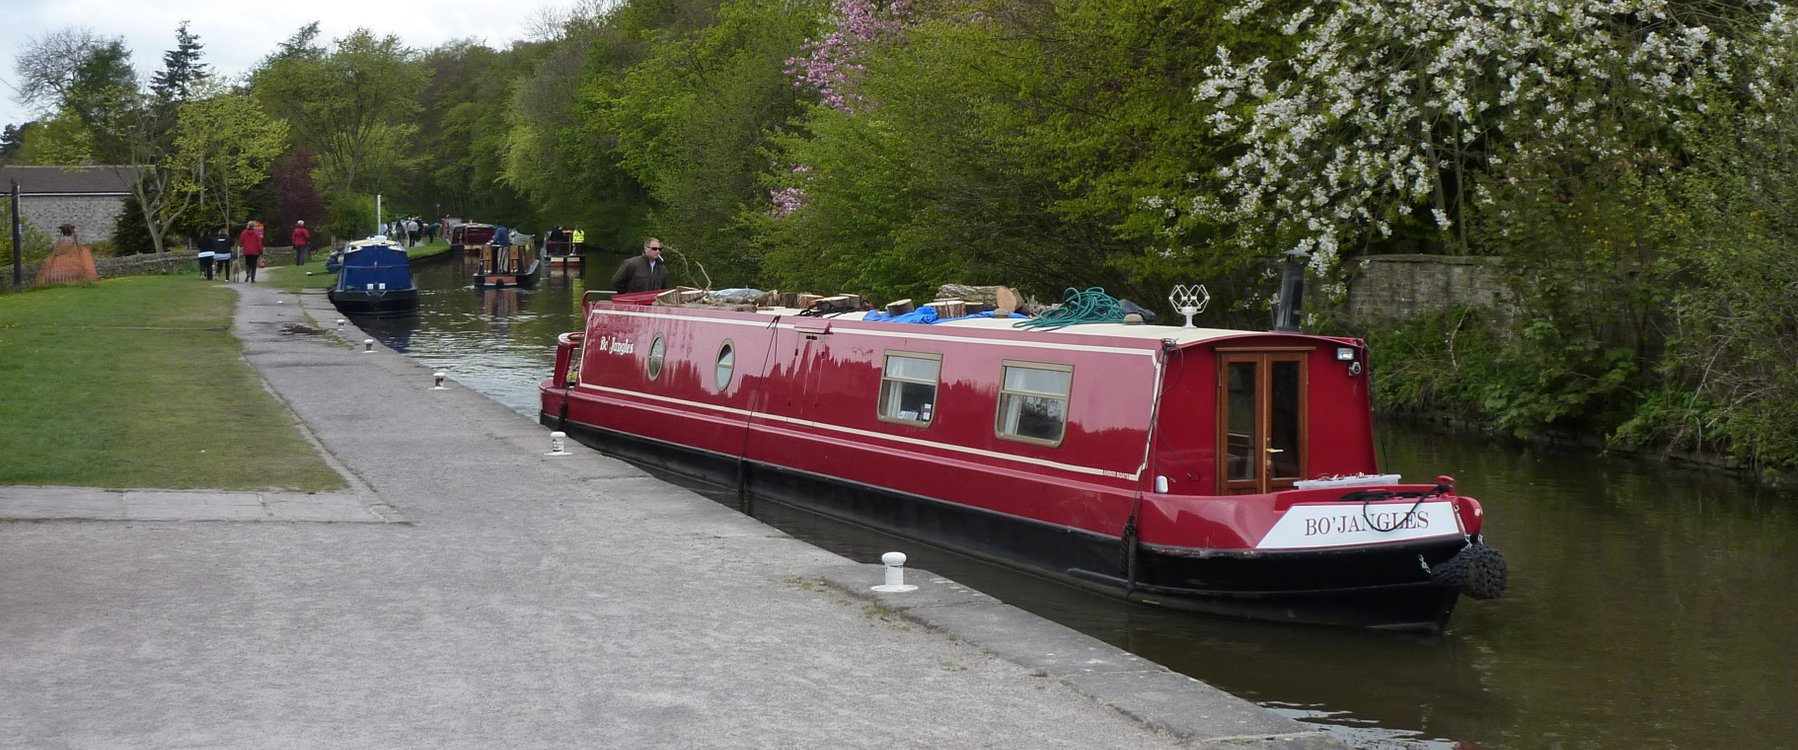 Canal boats outside Gargrave